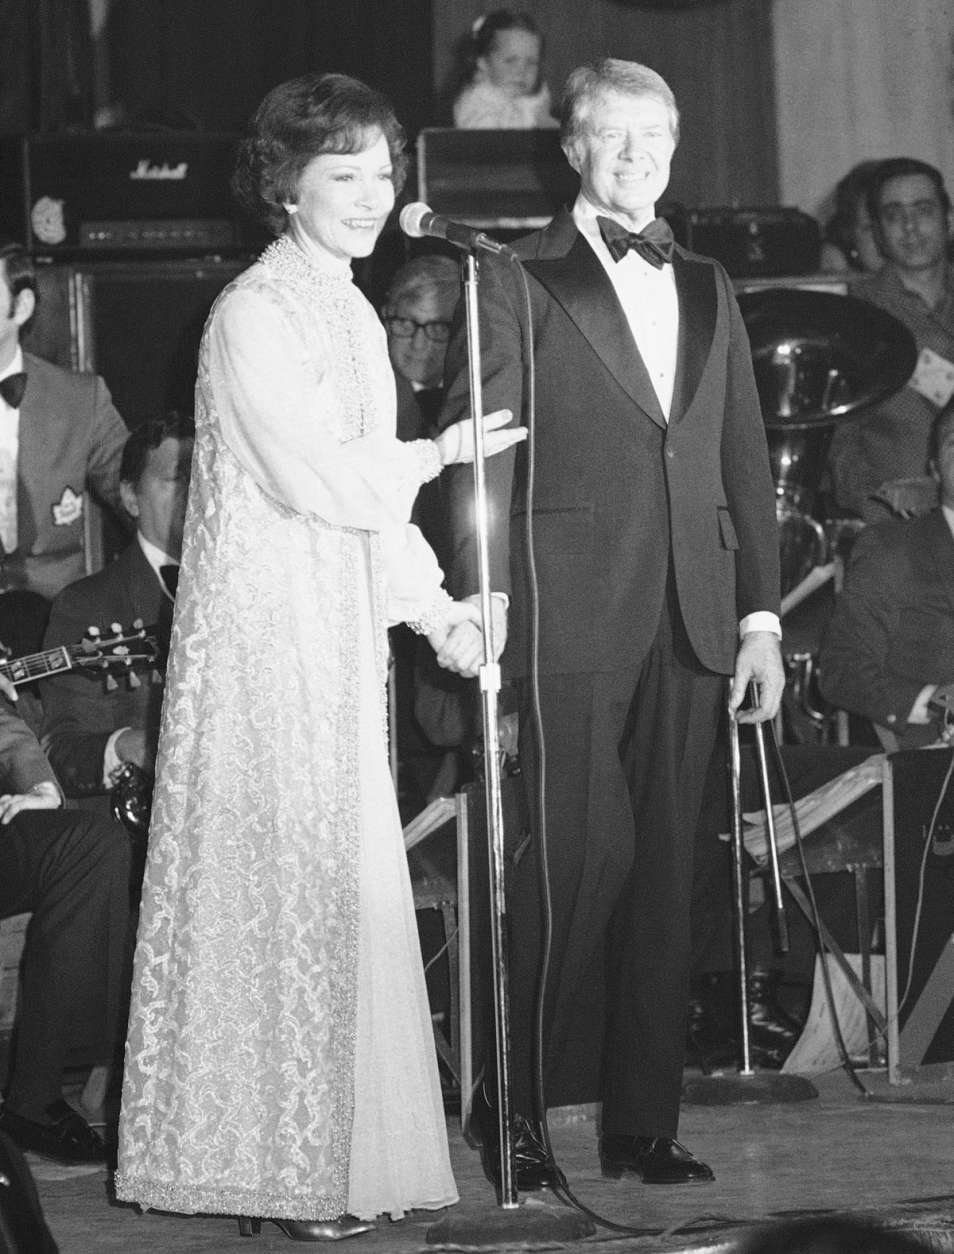 President Jimmy Carter holds his wife Rosalynn's hand as she says a few words at an inaugural party in Washington on Thursday, Jan. 21, 1977. The Carters attended seven parties at four hotels, the railroad station, a government building and an armory. (AP Photo)